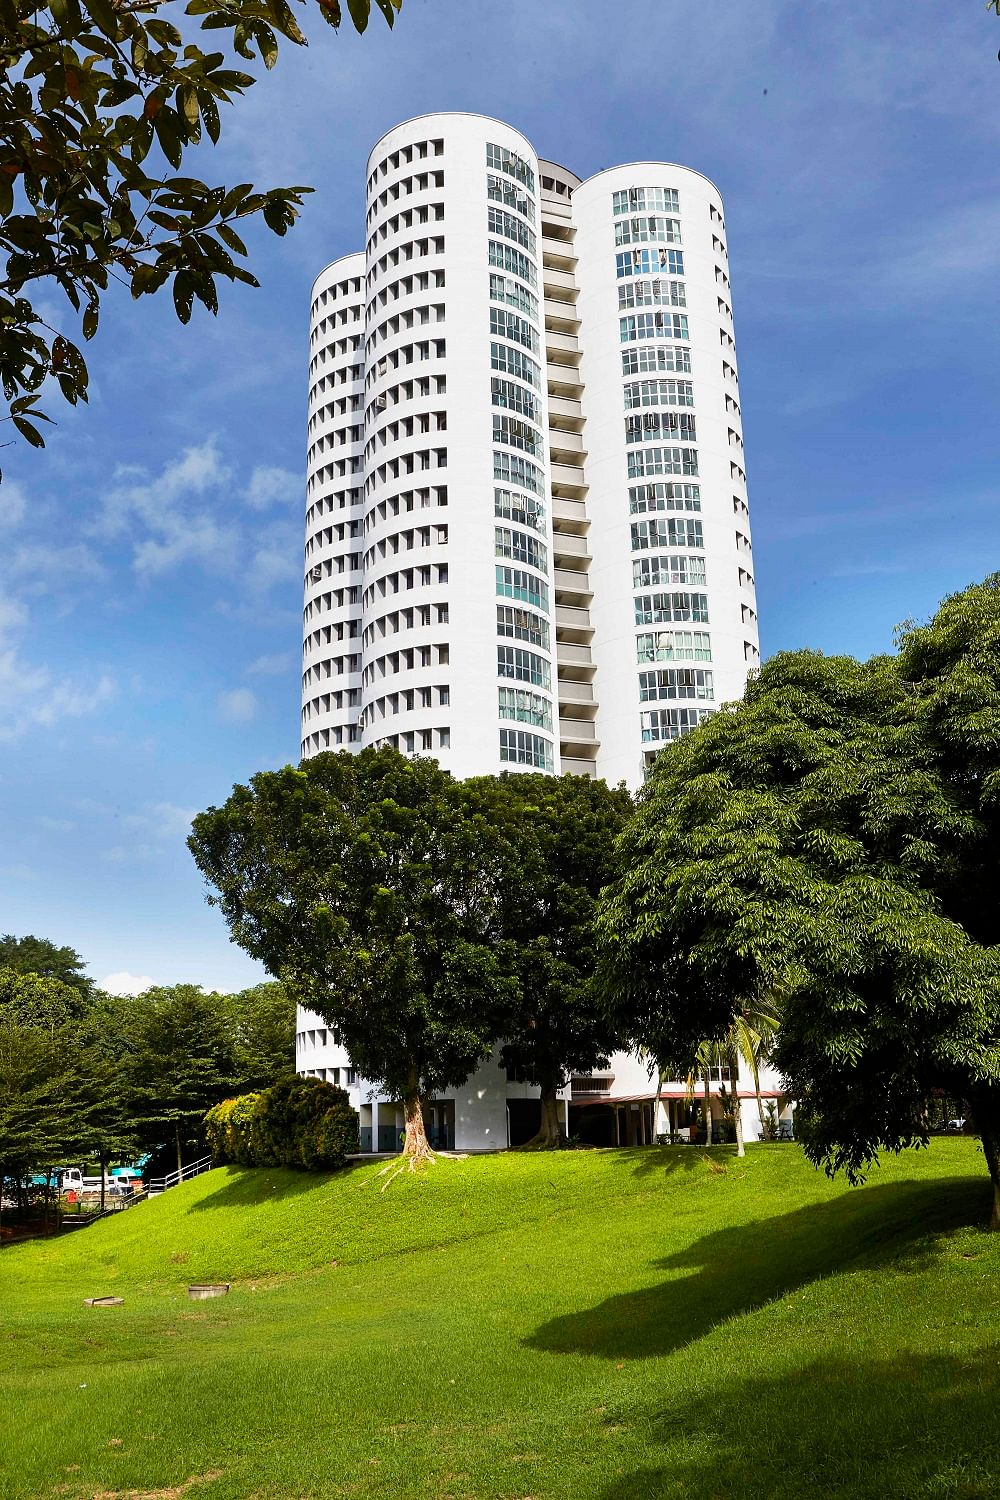 Hdb interior design in singapore 4 room flat at jurong east hwa li - Another Unusual Only In Ang Mo Kio Design Is Blk 259 Ang Mo Kio Ave 2 Singapore S Only Circular Housing Board Hdb Block The Spacious 5 Roomed